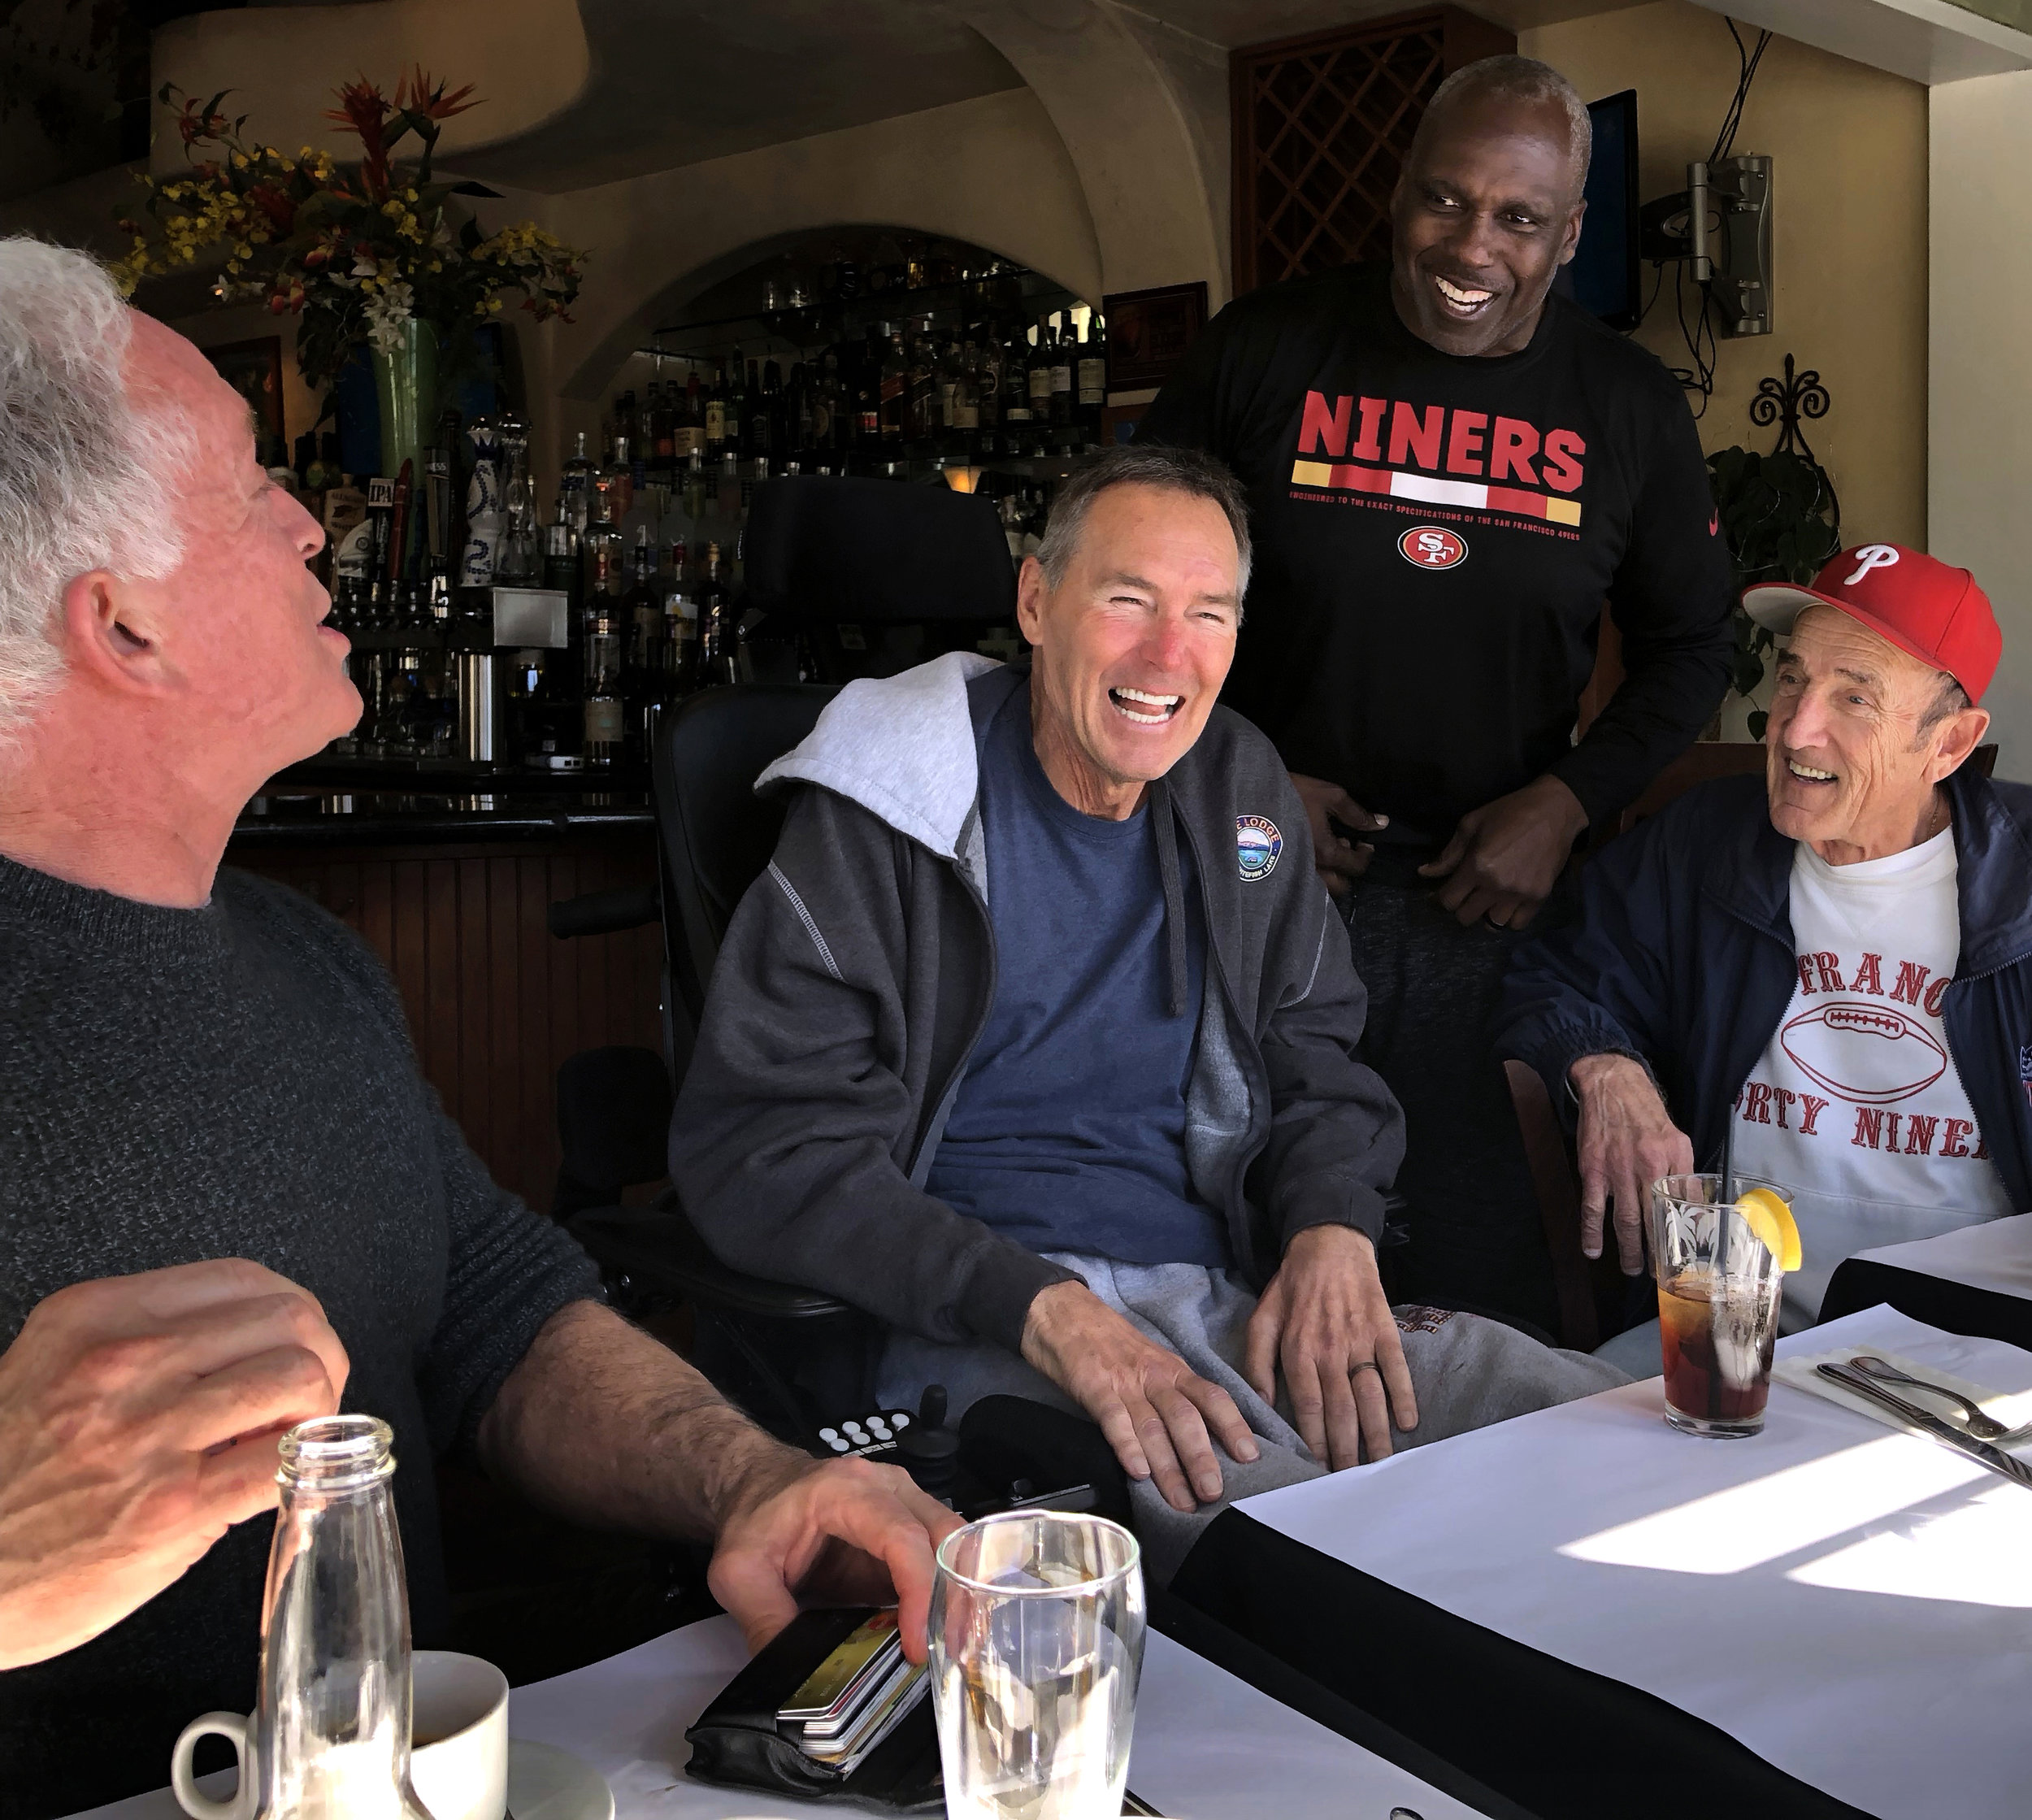 Mark Ibanez, Dwight Clark, Guy McIntyre, and Michael Zagaris laugh during lunch in Capitola, California, on February 13, 2018.